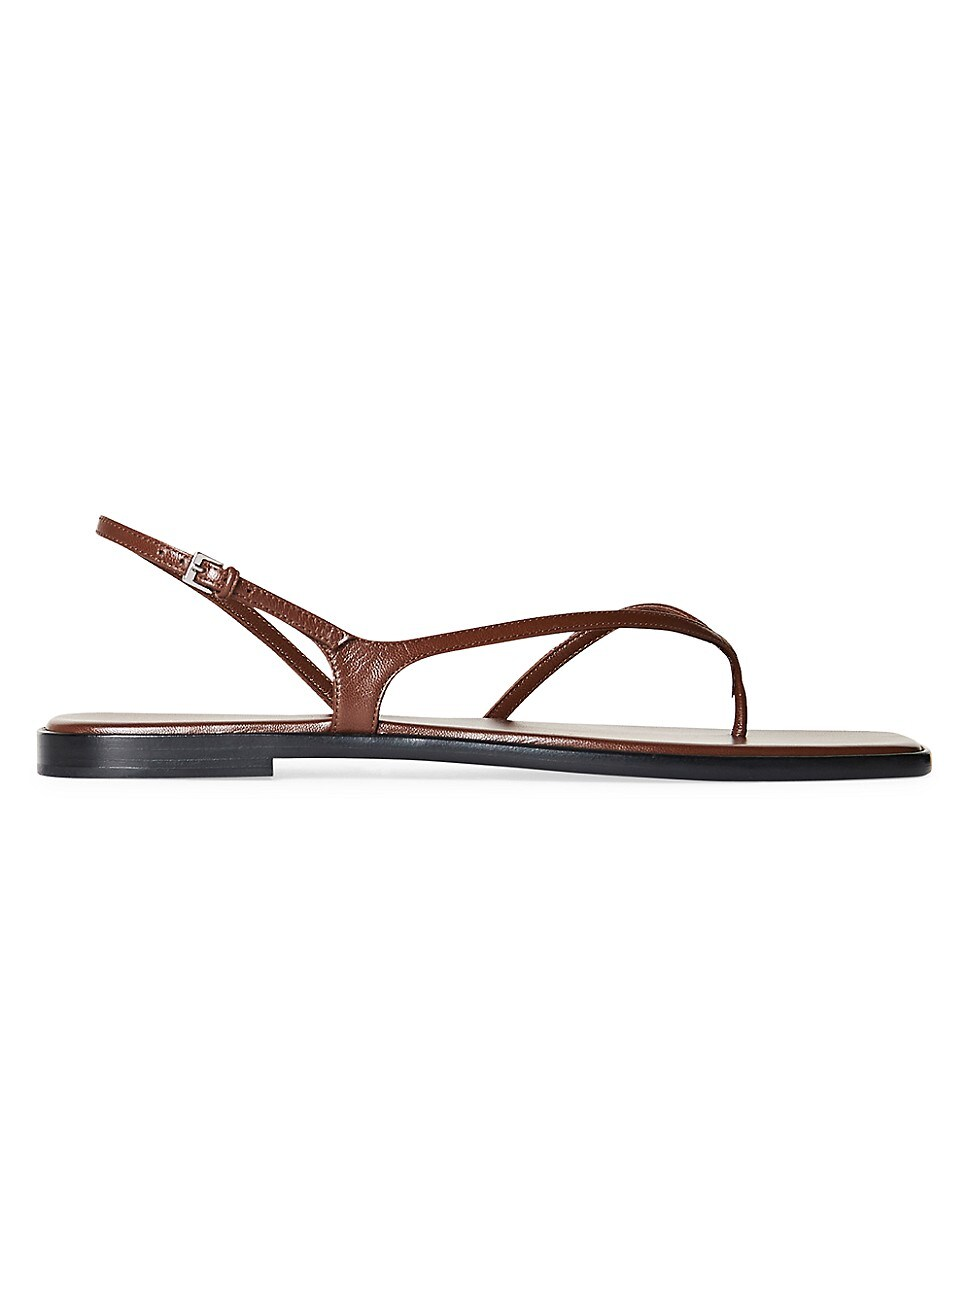 The Row Leathers WOMEN'S CONSTANCE FLAT LEATHER SANDALS